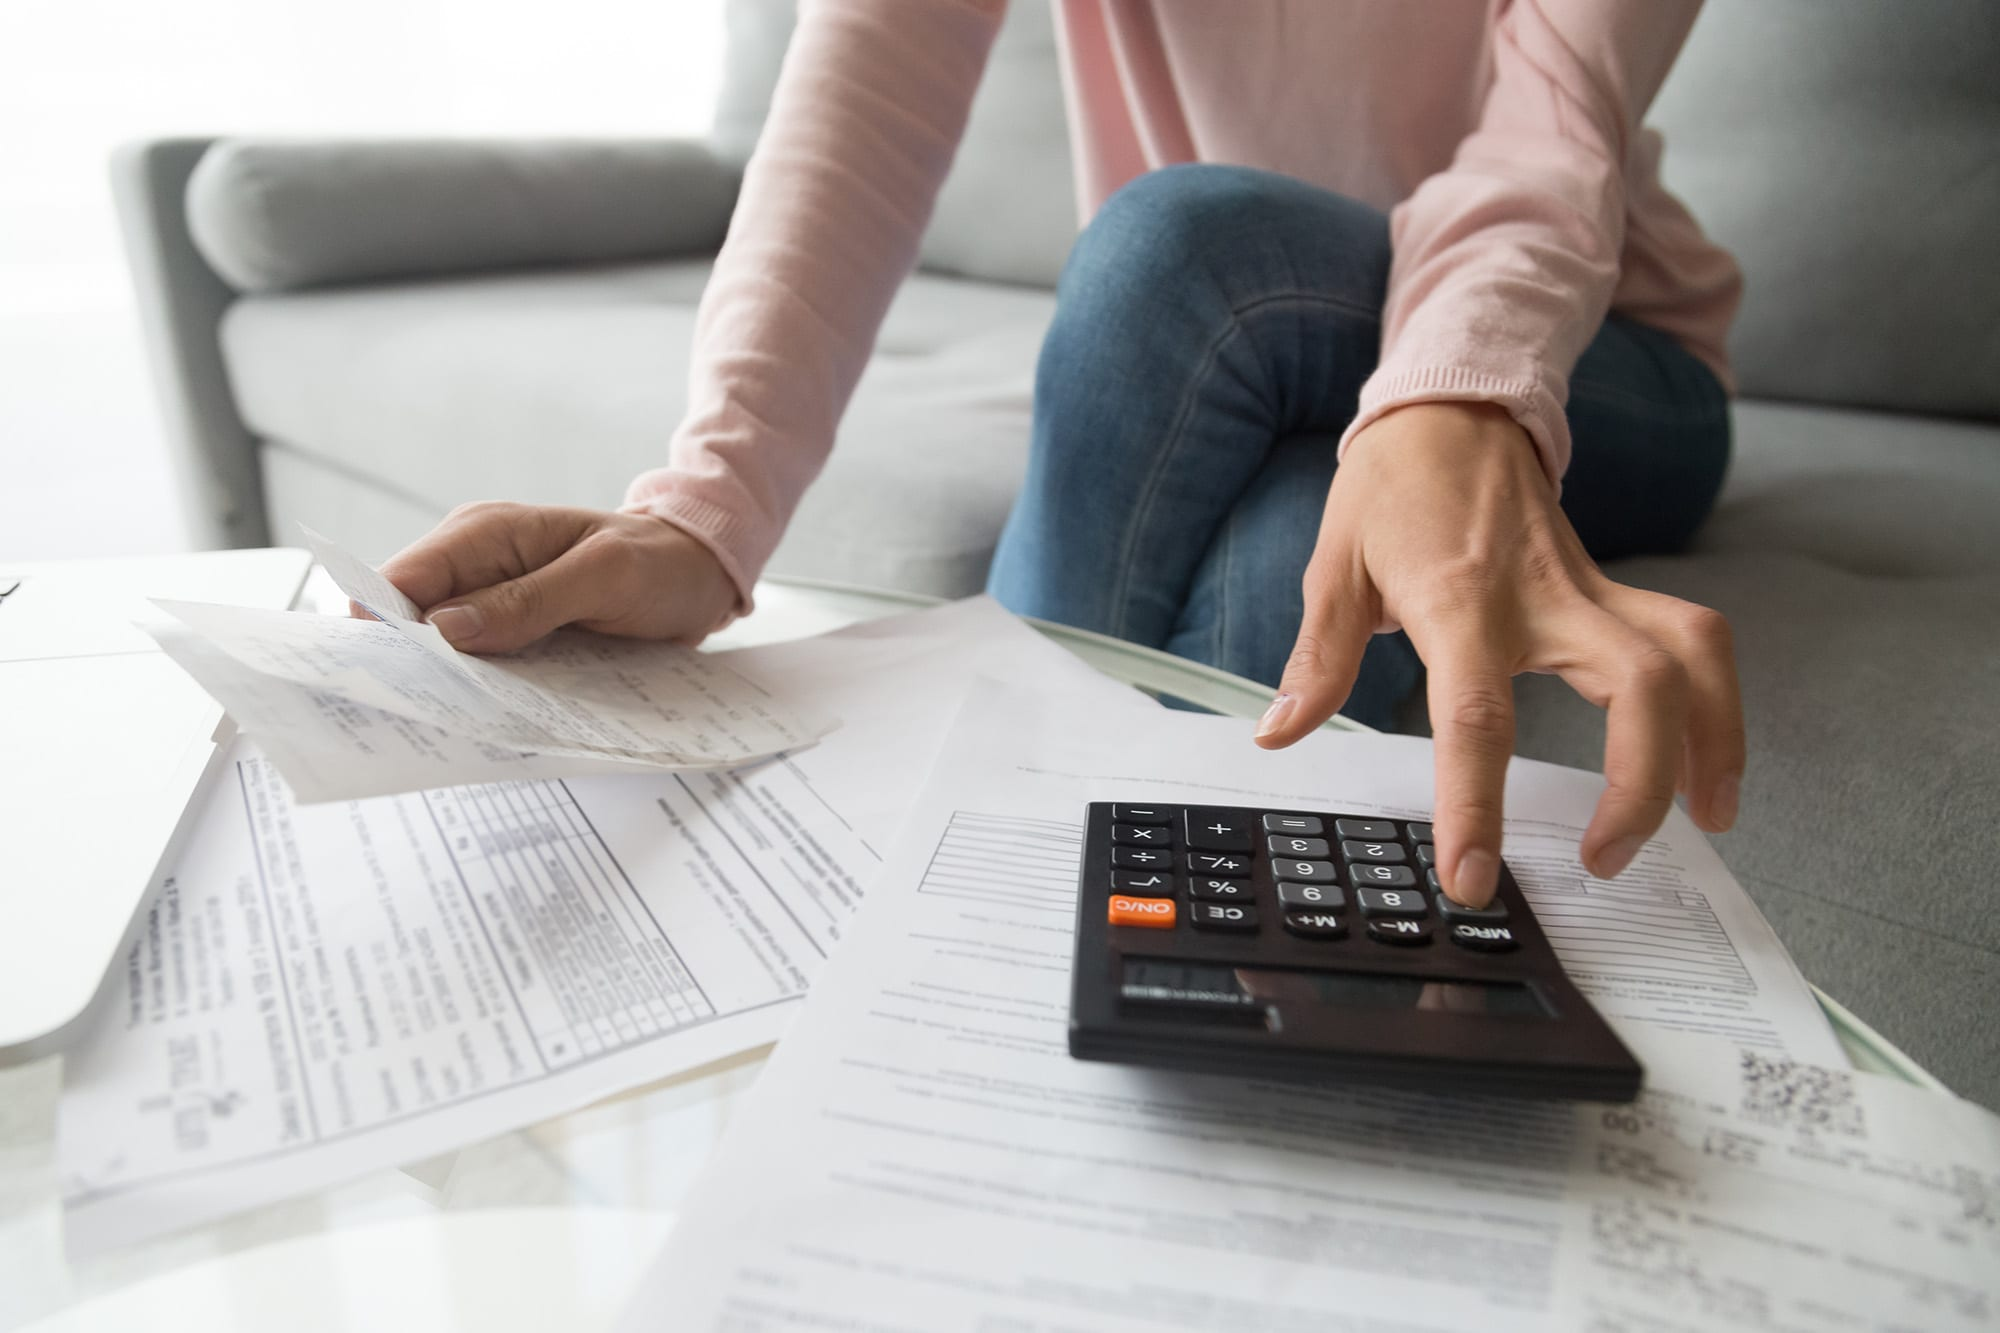 A young lady at home trying to calculate the costs and pricing for a small self-administered scheme SSAS